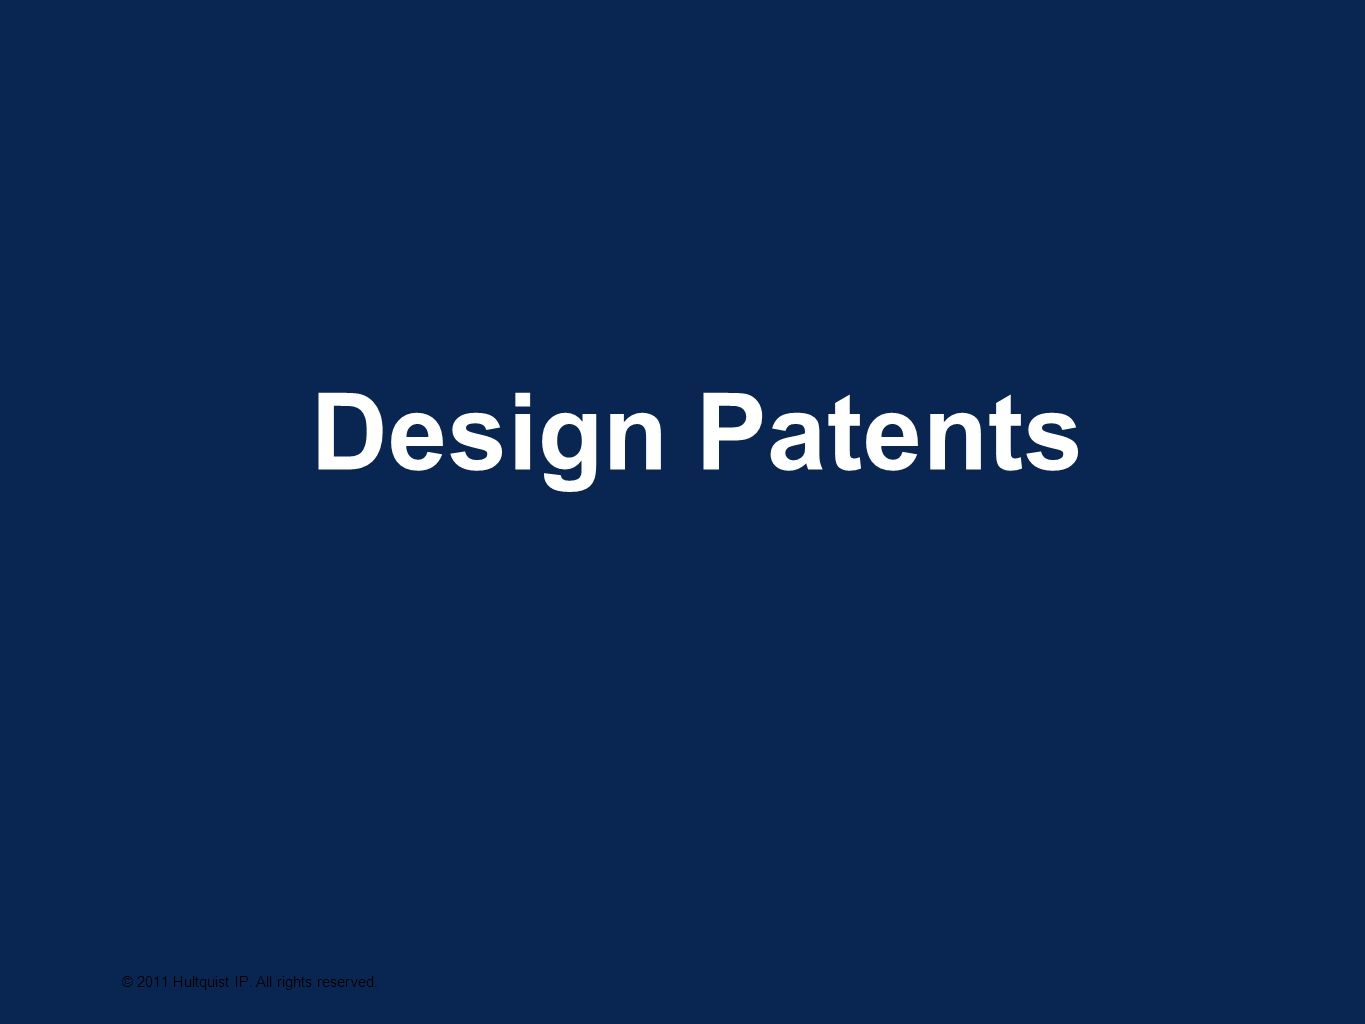 UTILITY MODEL BASICS Issues rapidly after formalities examination Substantive examination deferred until after issuance Non-obviousness requirement less stringent or absent Protectable term shorter than utility patents Similar to utility patent after examination complete © 2011 Hultquist IP.